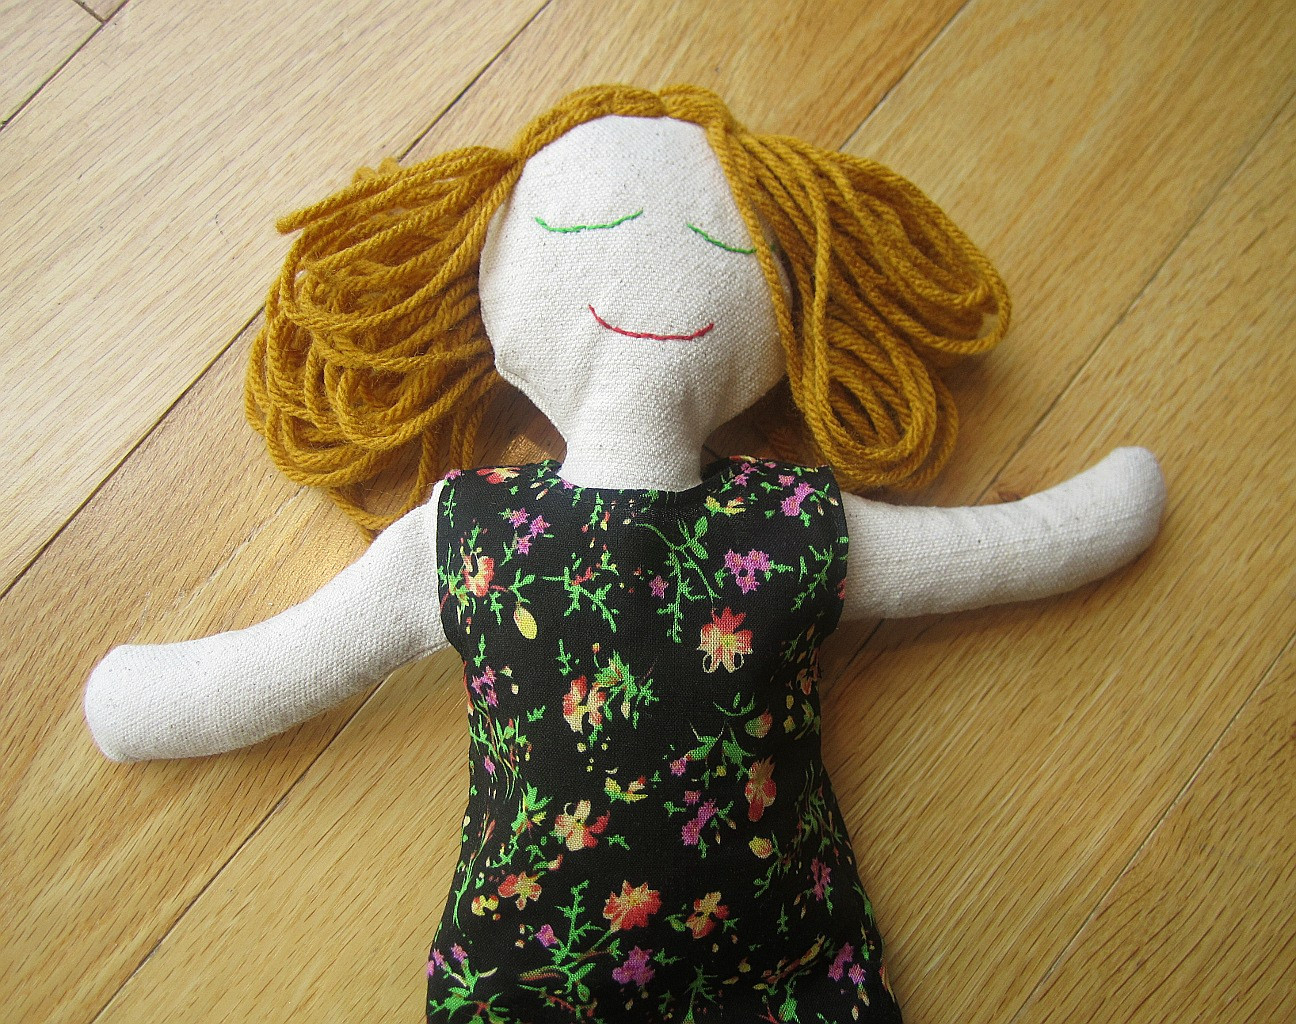 Doll Patterns Elegant Rag Doll Free Sewing Pattern and Instructions Of Doll Patterns Best Of My Rag Doll Adorable Dolls to Sew